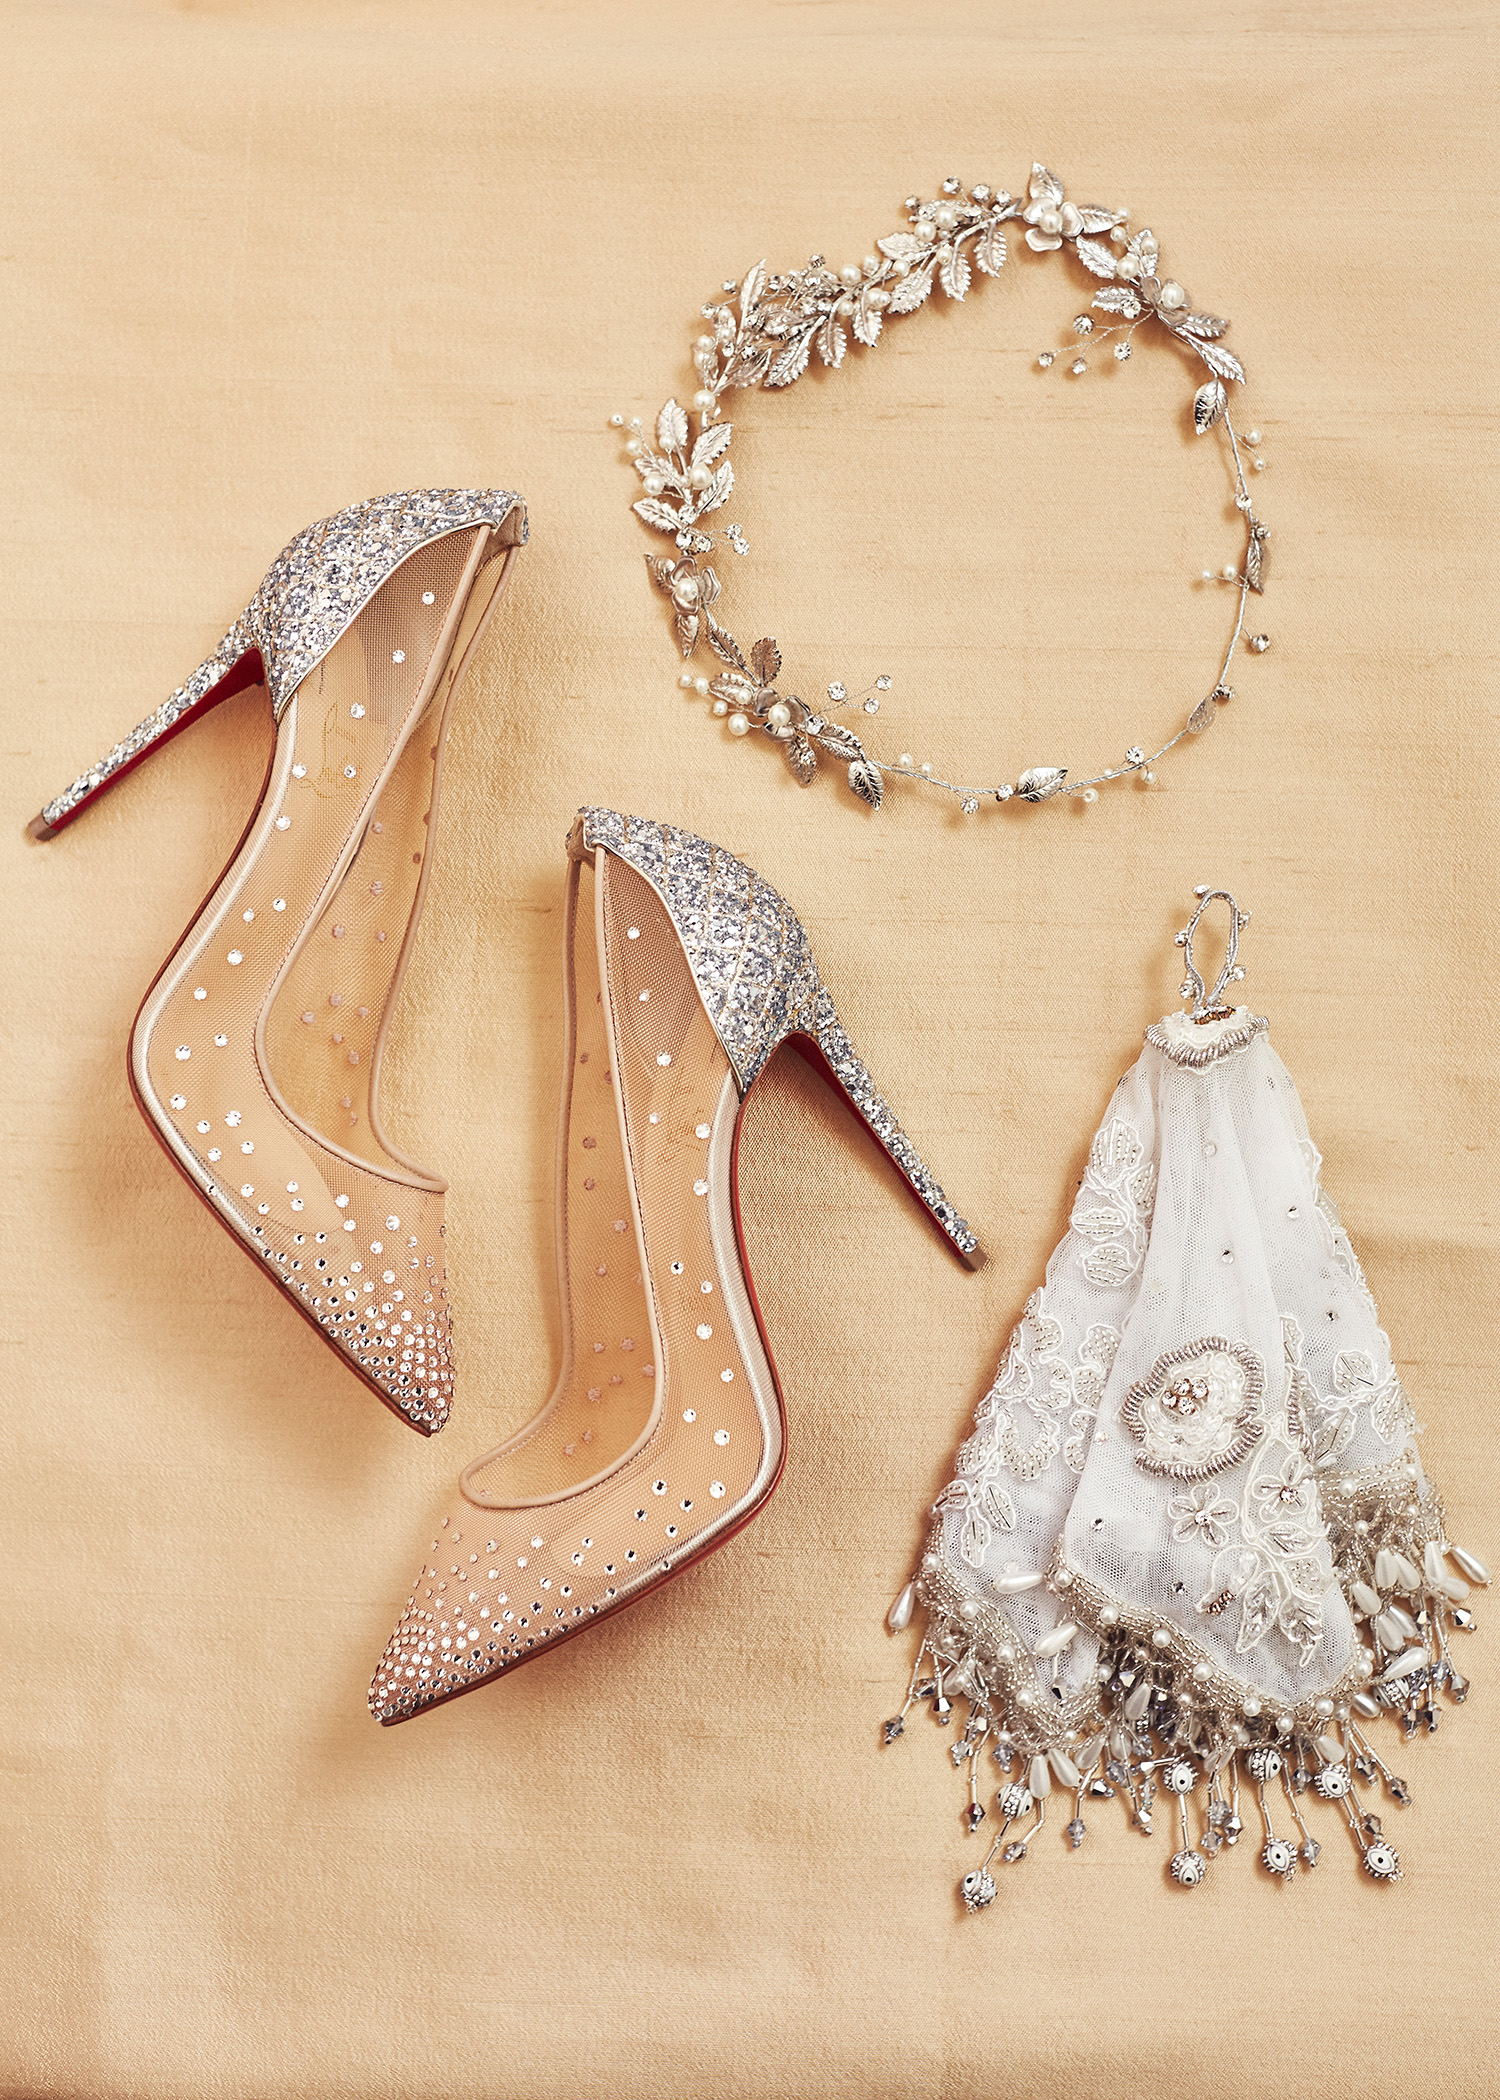 shqipe zenel wedding accessories shoes tiara